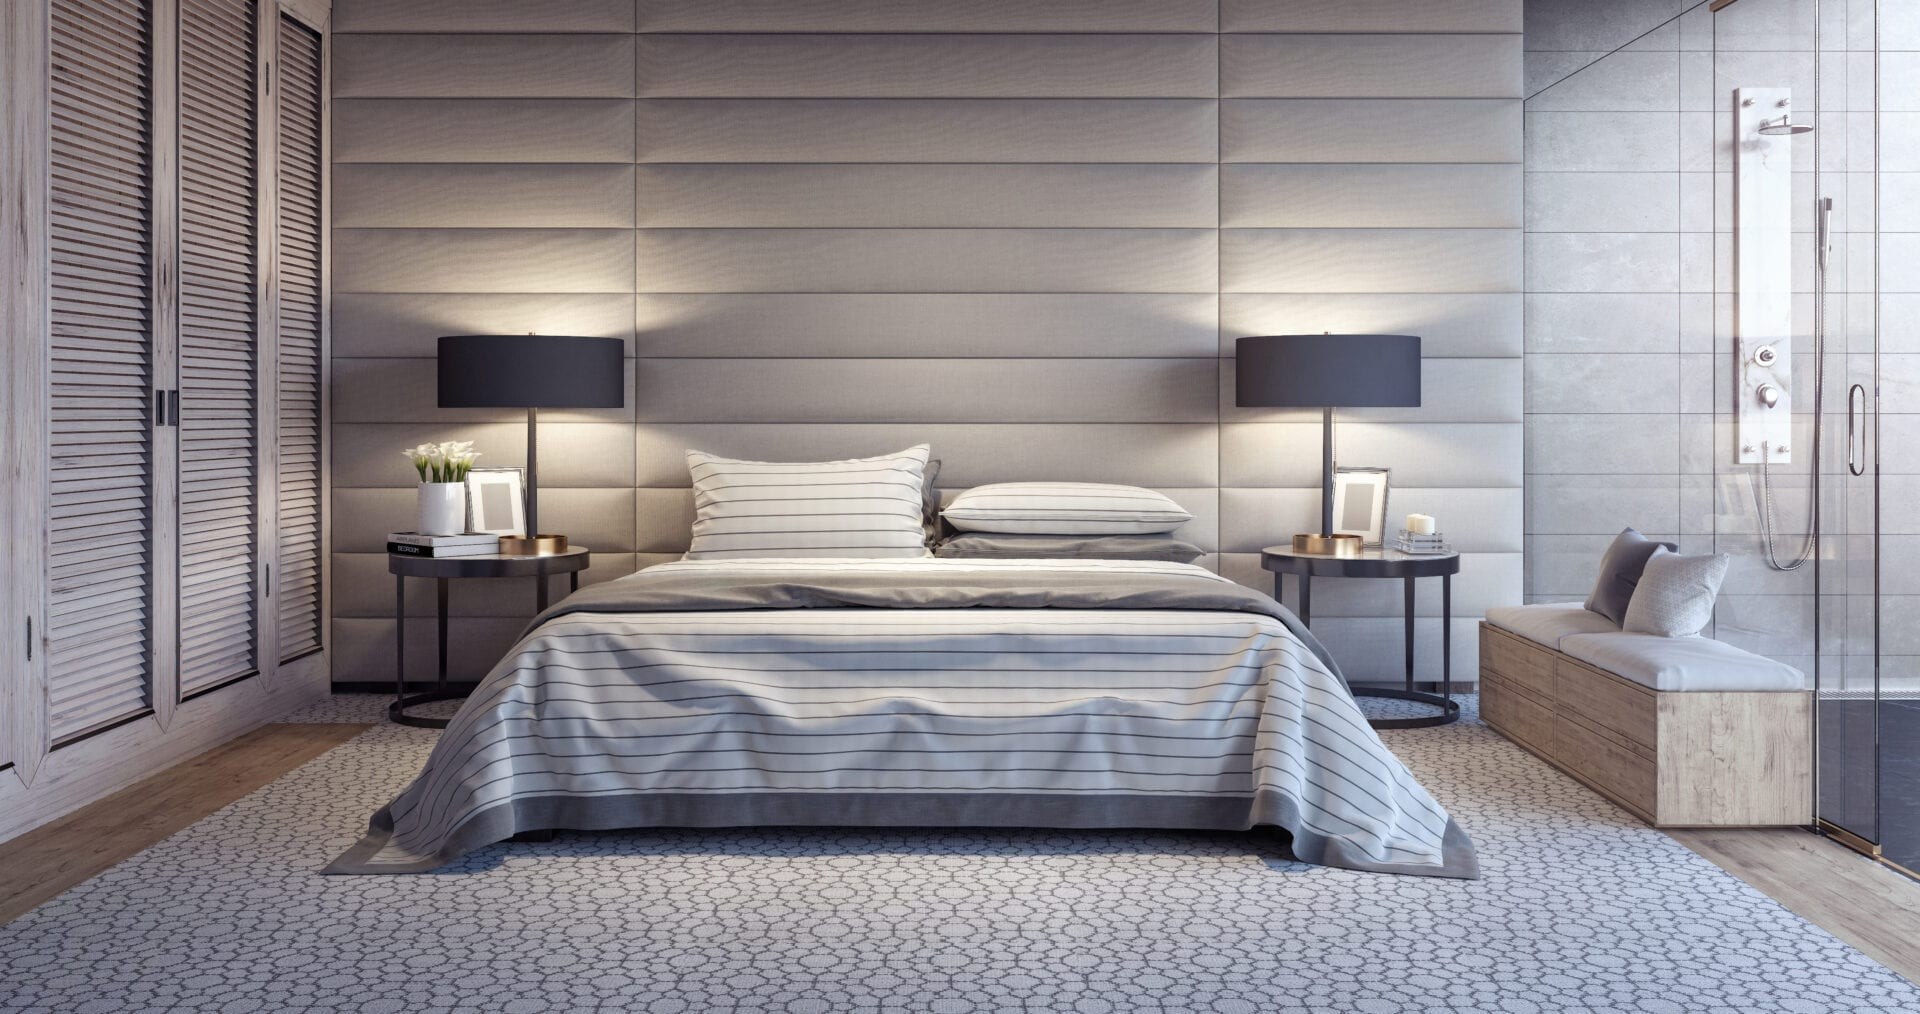 Azzaro - Wall mounted upholstered, luxury headboard with custom upholstered wall panels - Custom luxury, upholstered beds with high end, bedroom textiles | Blend Home Furnishings